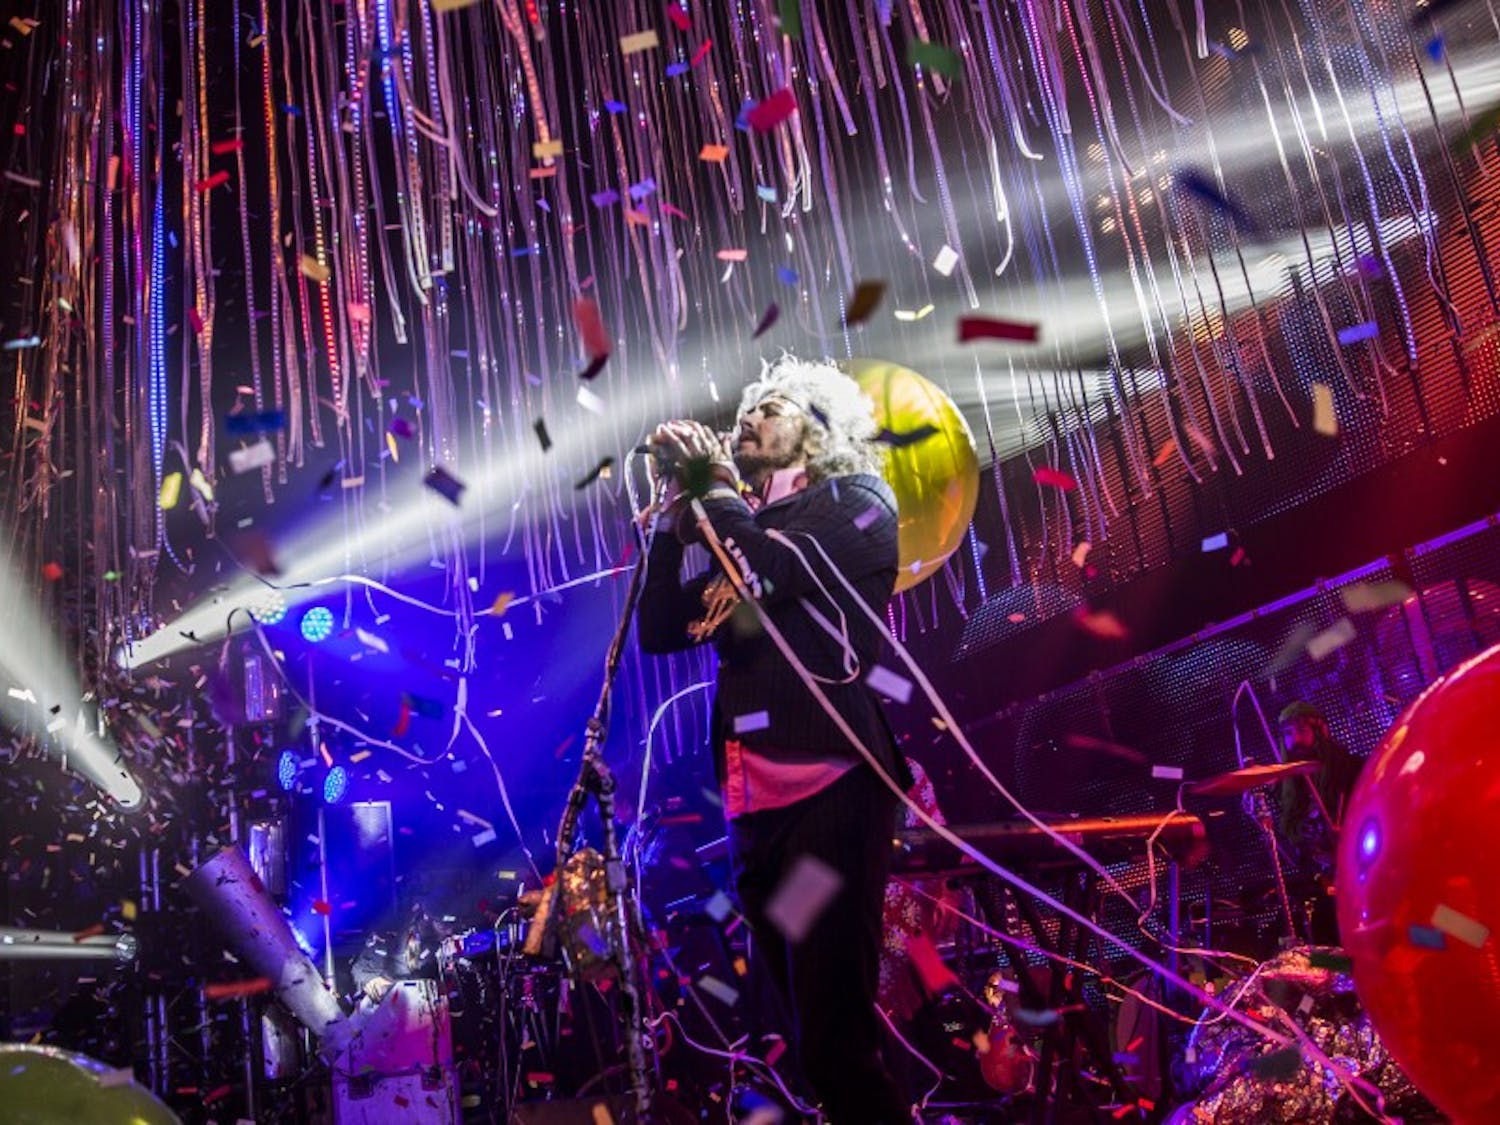 TheFlaming Lips' frontmanWayne Coyneperforming a mind-bending set at the Orpheum on Friday.